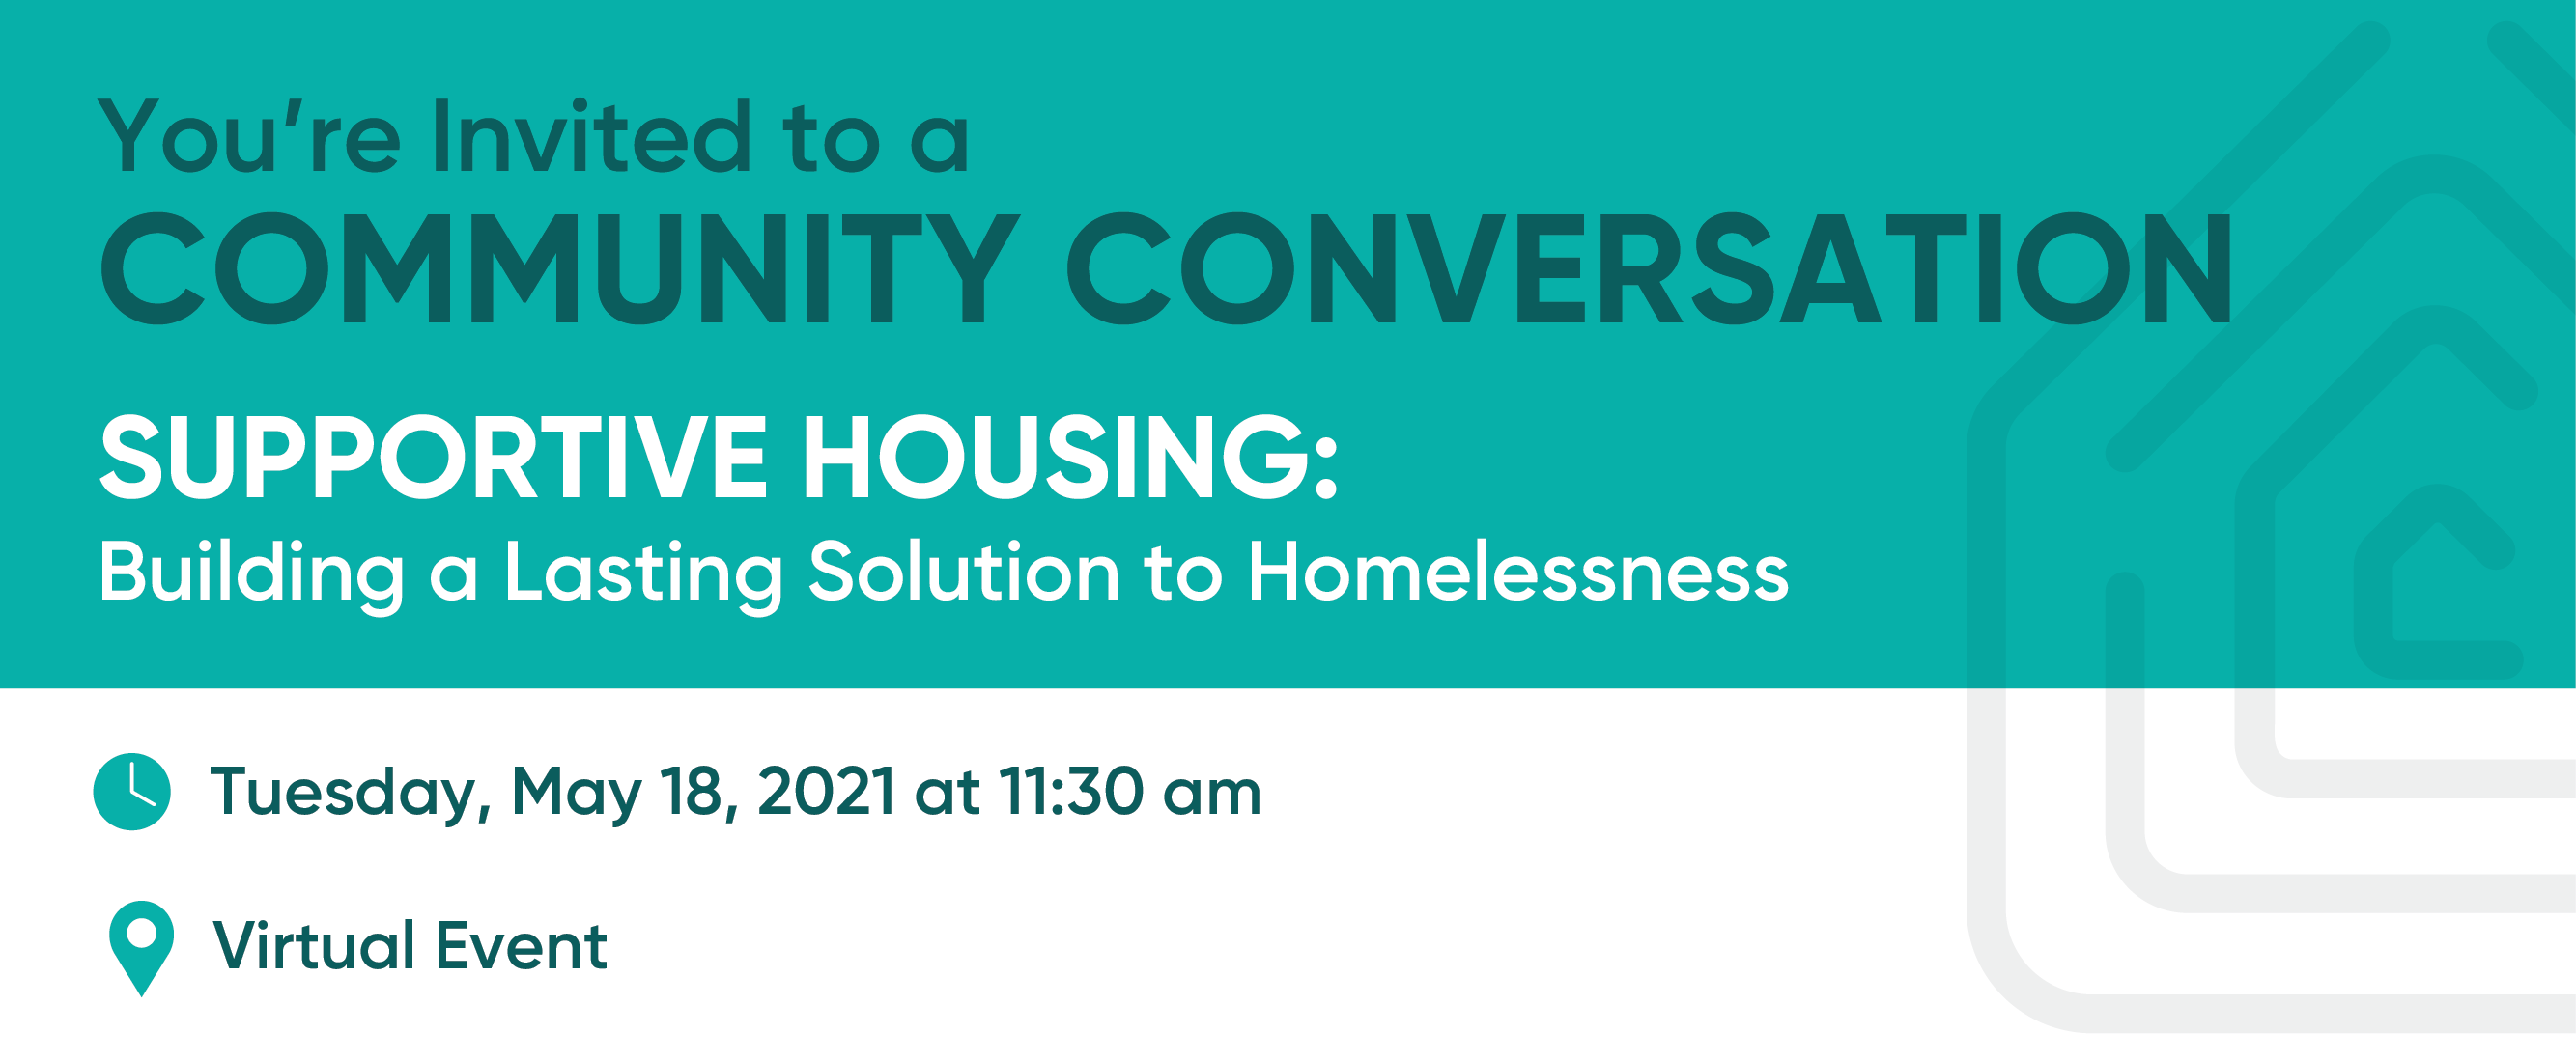 Community Conversation: Building a Lasting Solution to Homelessness with Supportive Housing